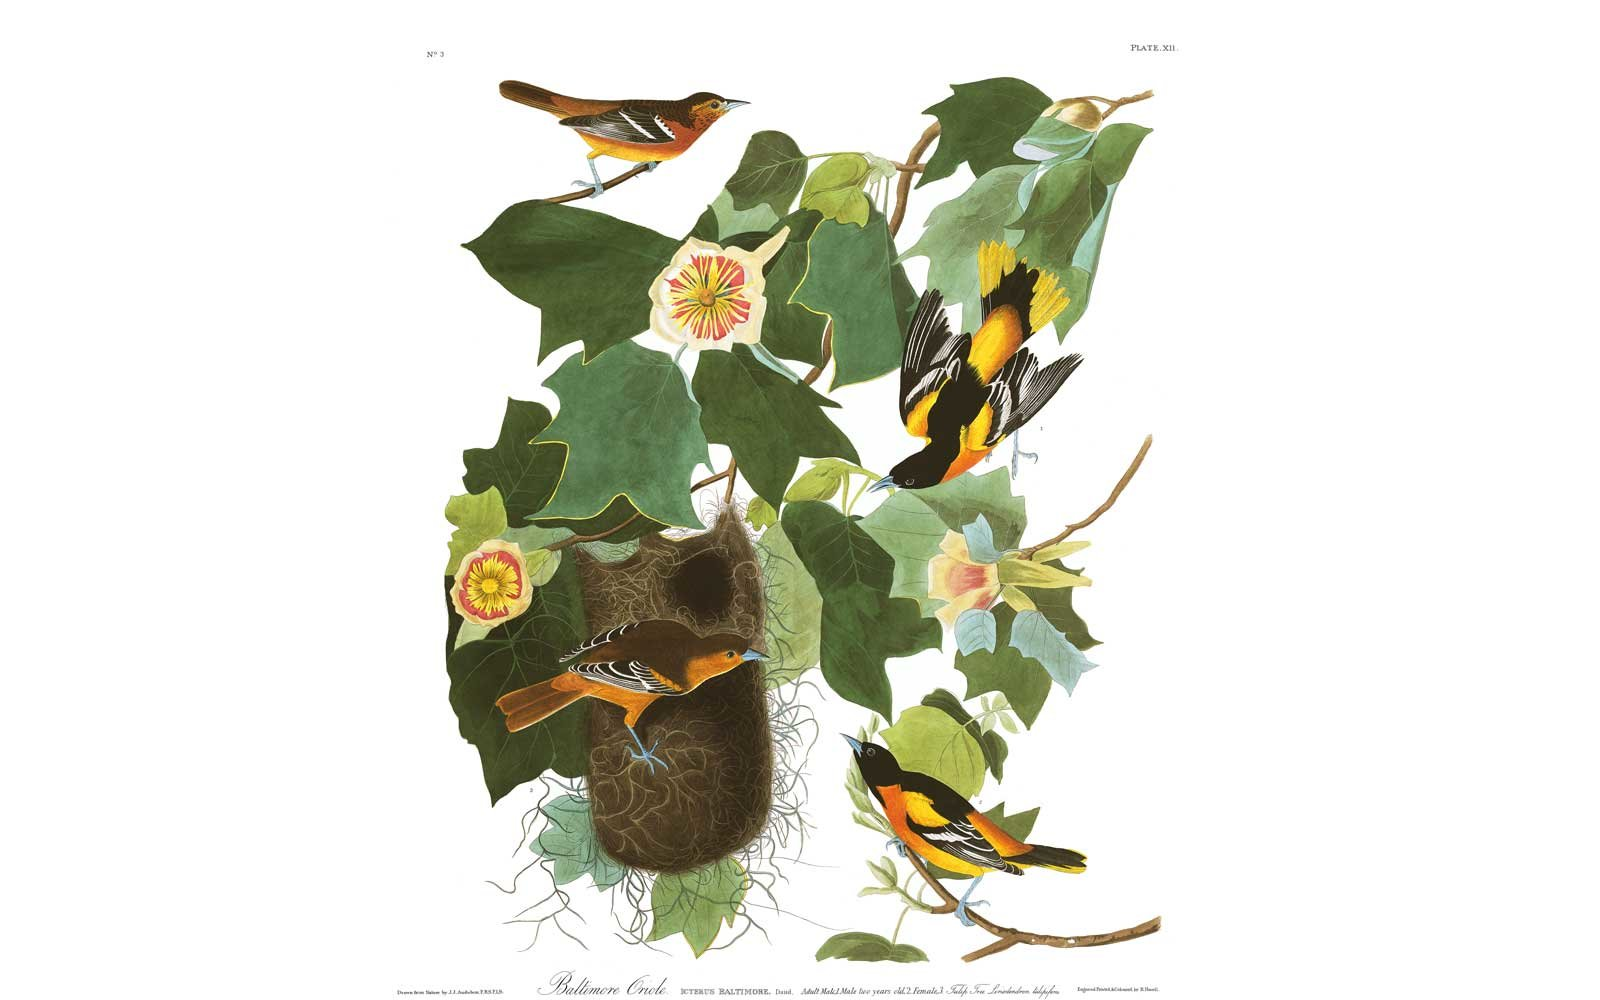 Audubon Birds of America - Baltimore Oriole